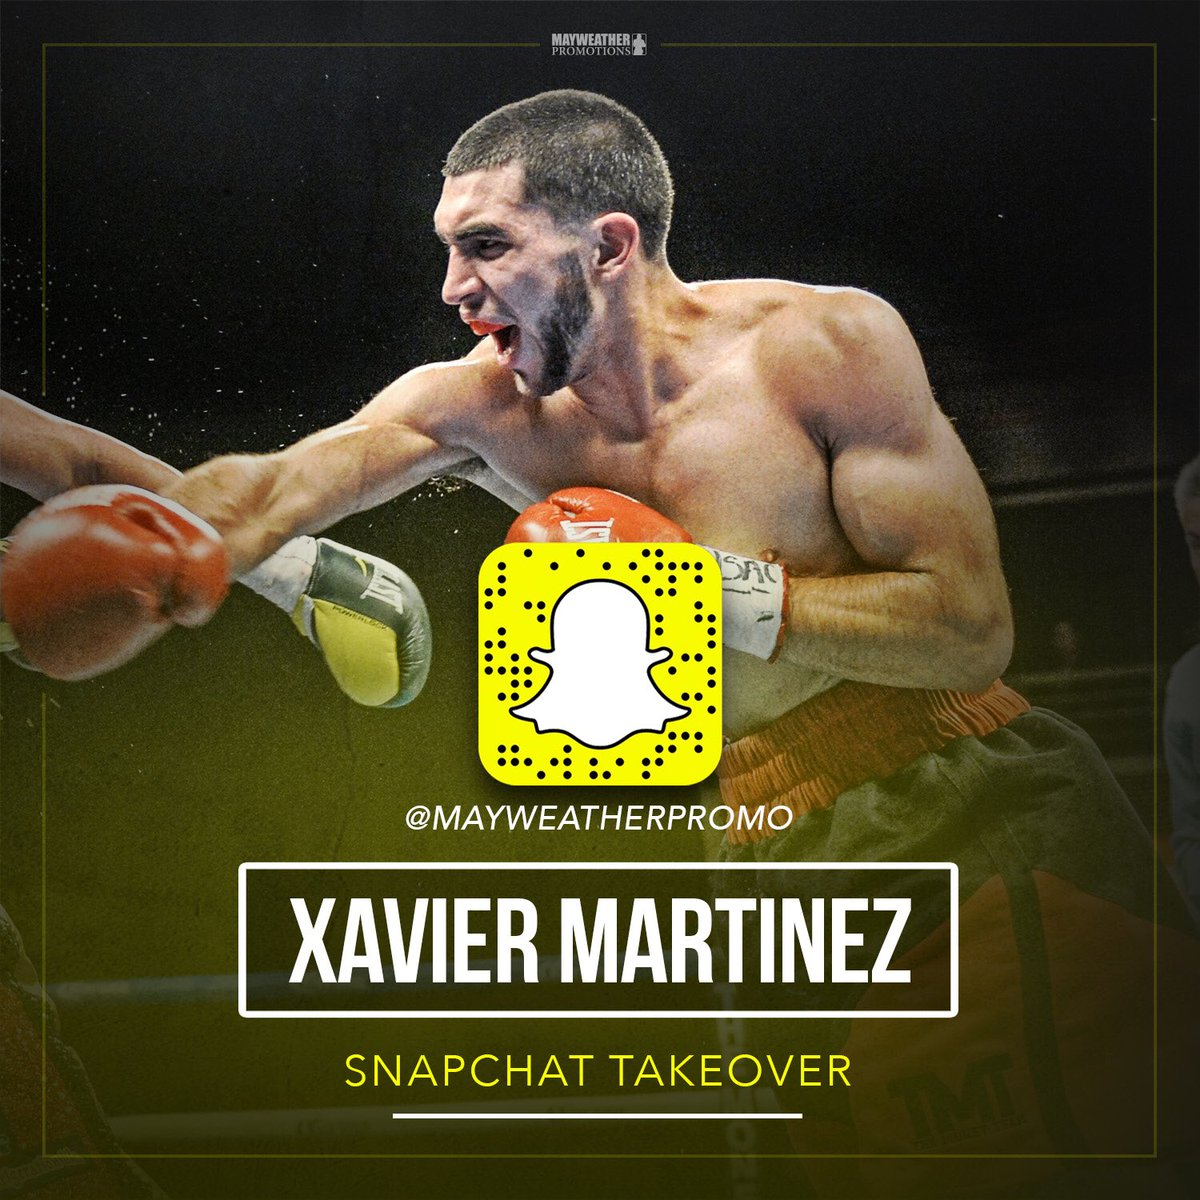 test Twitter Media - Be sure to tune into our snapchat today as undefeated featherweight prospect #XavierMartinez  takes you through his day as he prepares for his return to the ring on January 27th at Sam's Town Live 🥊 https://t.co/U2lFJPmaW9